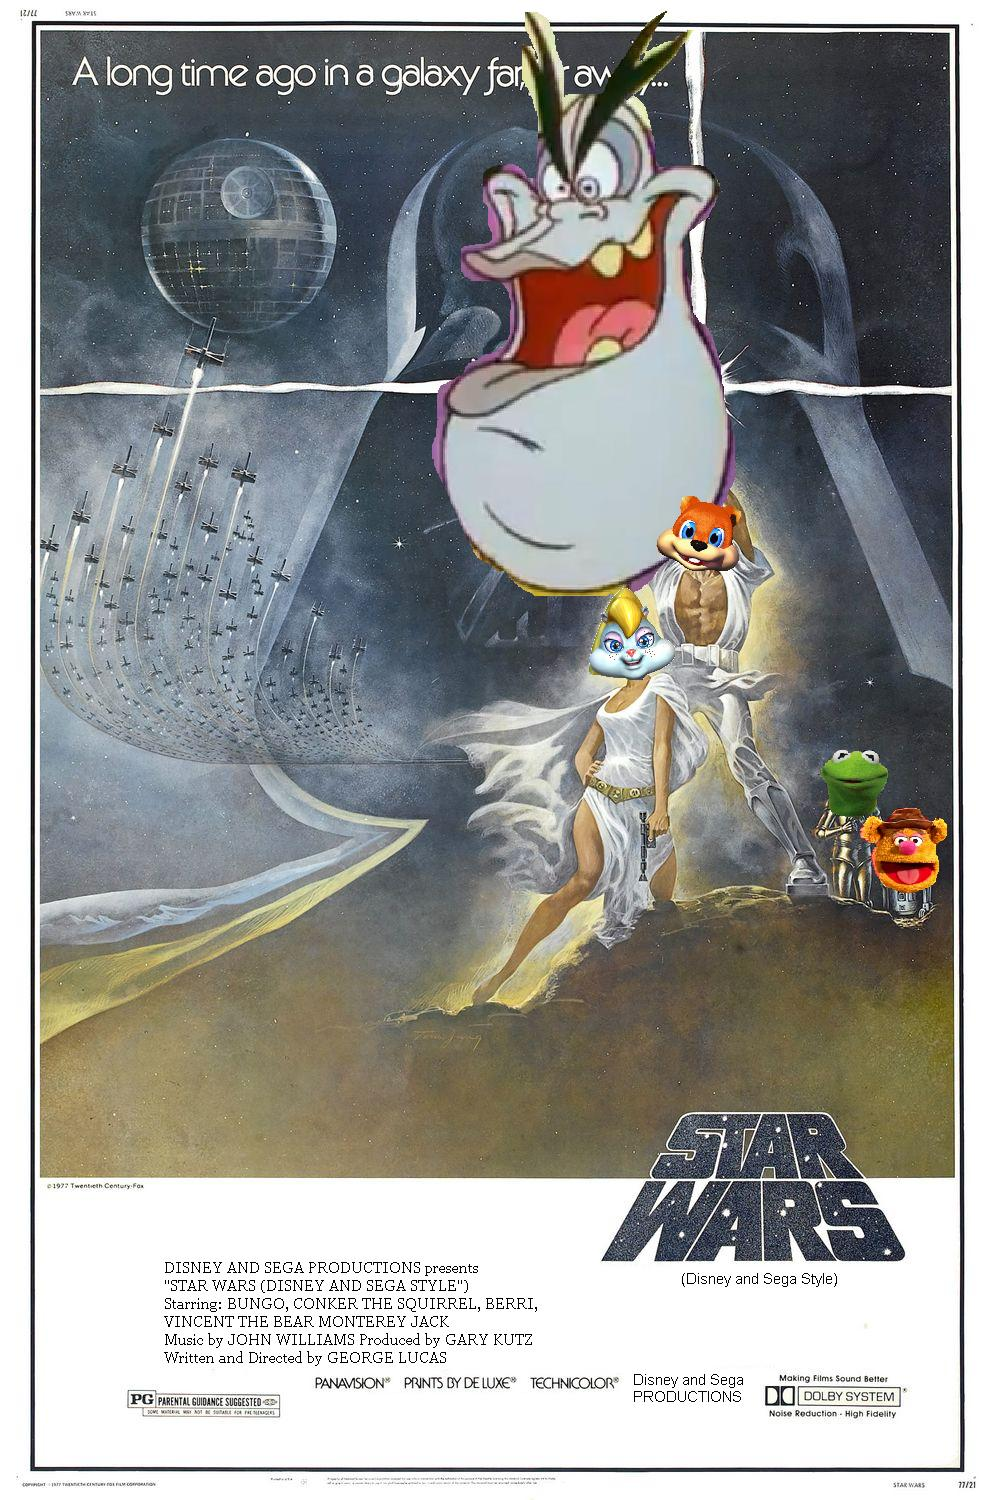 Star Wars Episode 4: A New Hope (Disney and Sega Style)